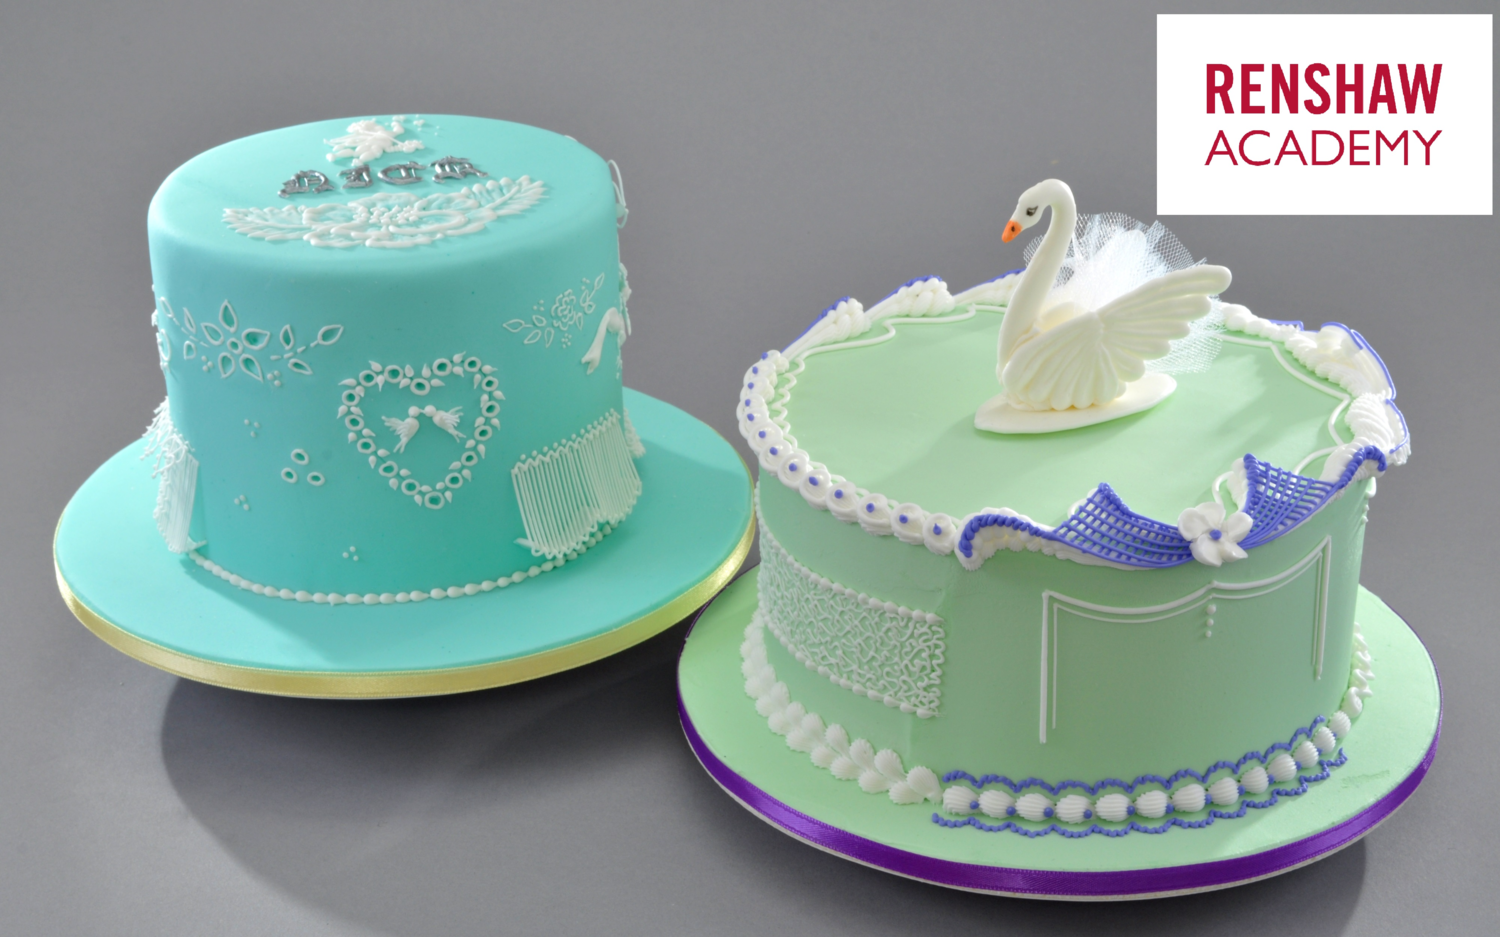 RENSHAW ACADEMY CERTIFICATION,Module 3; ROYAL ICING JUNE 24-26, 2019 at TSCS